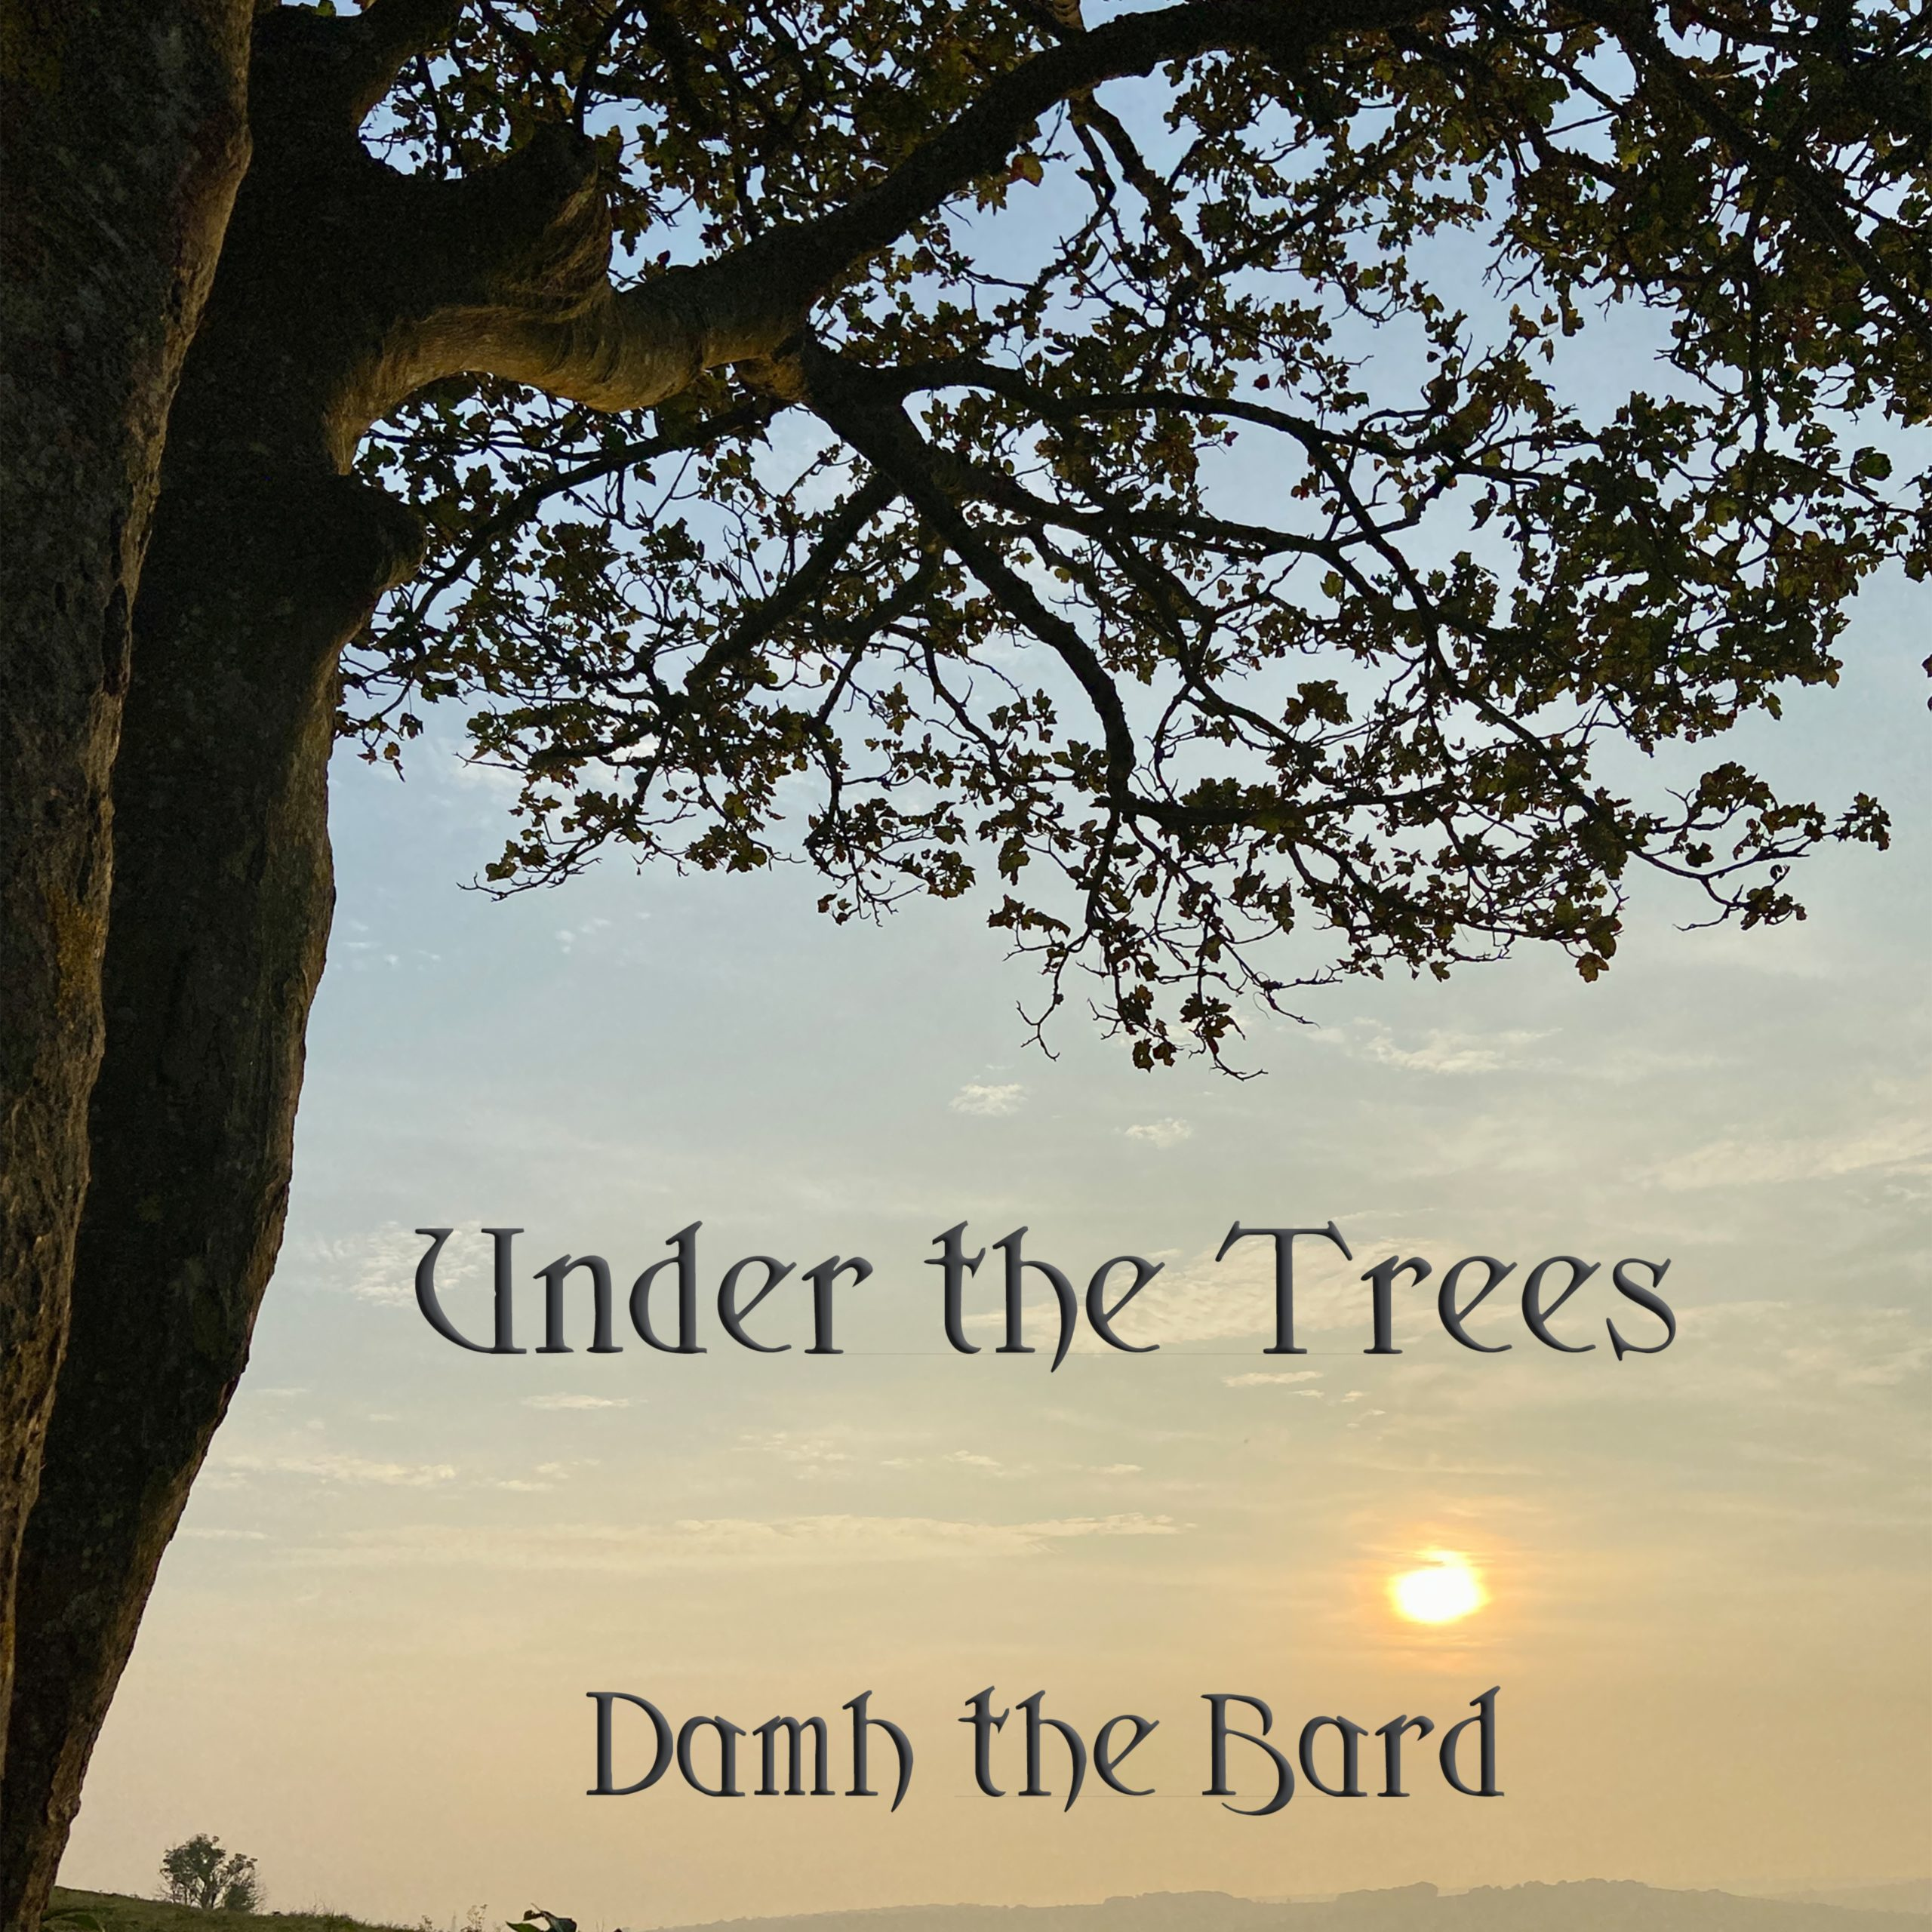 Story of the Song – Under the Trees